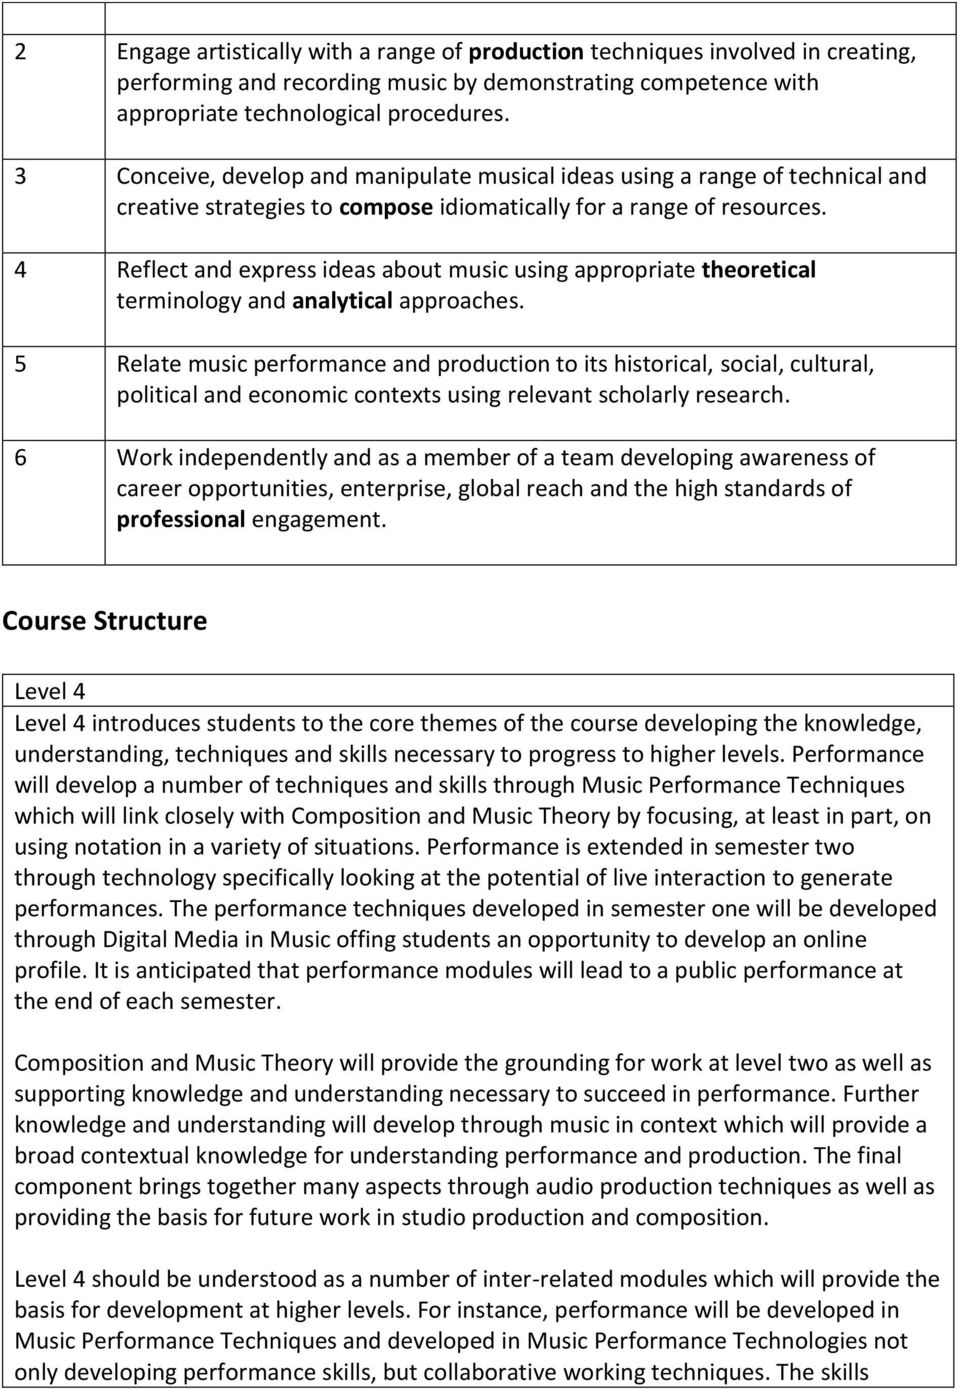 4 Reflect and express ideas about music using appropriate theoretical terminology and analytical approaches.